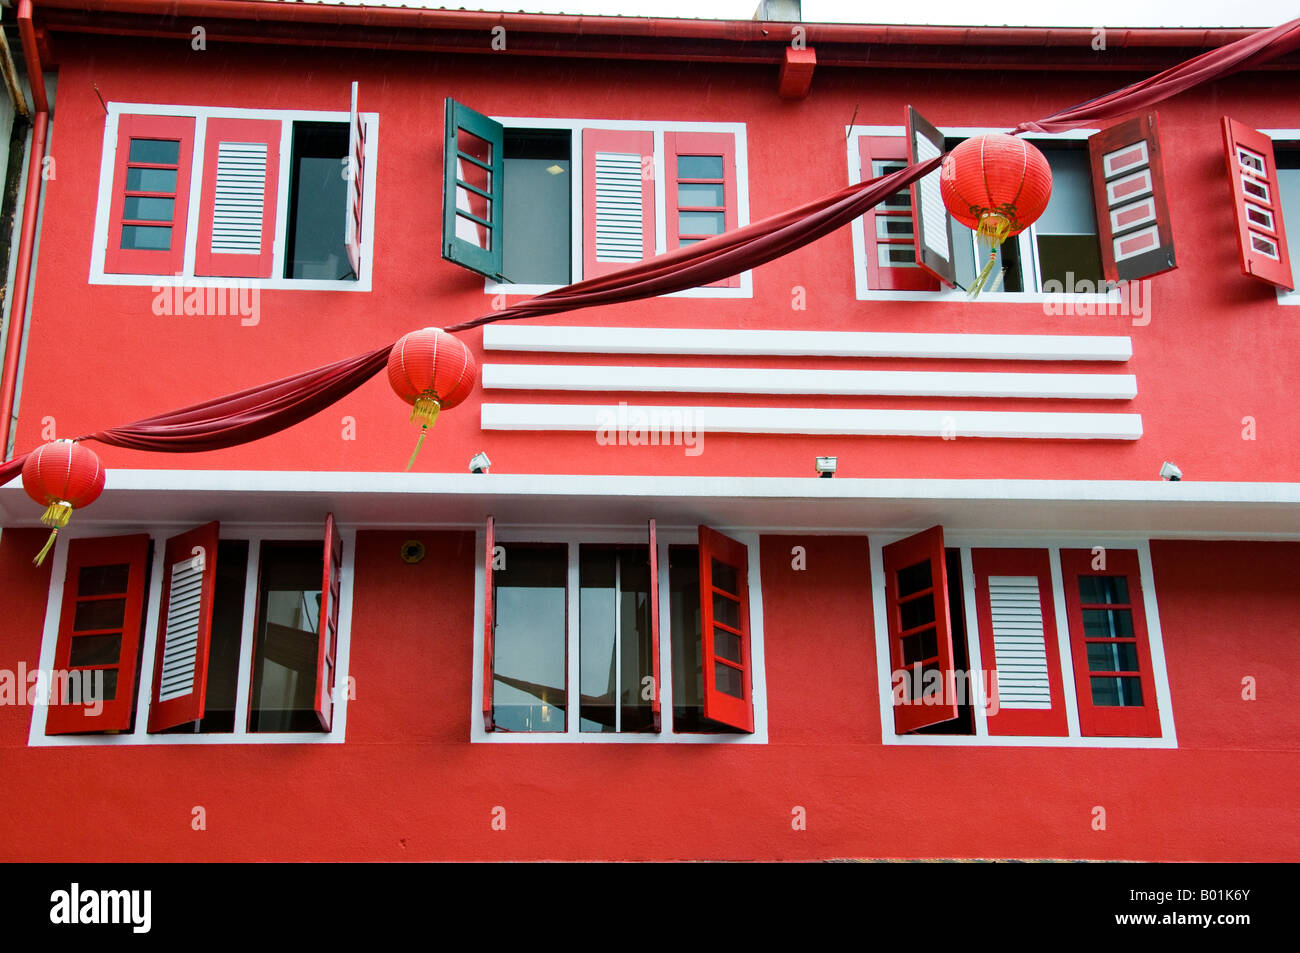 windows with shutters on second story apartment in Singapore - Stock Image